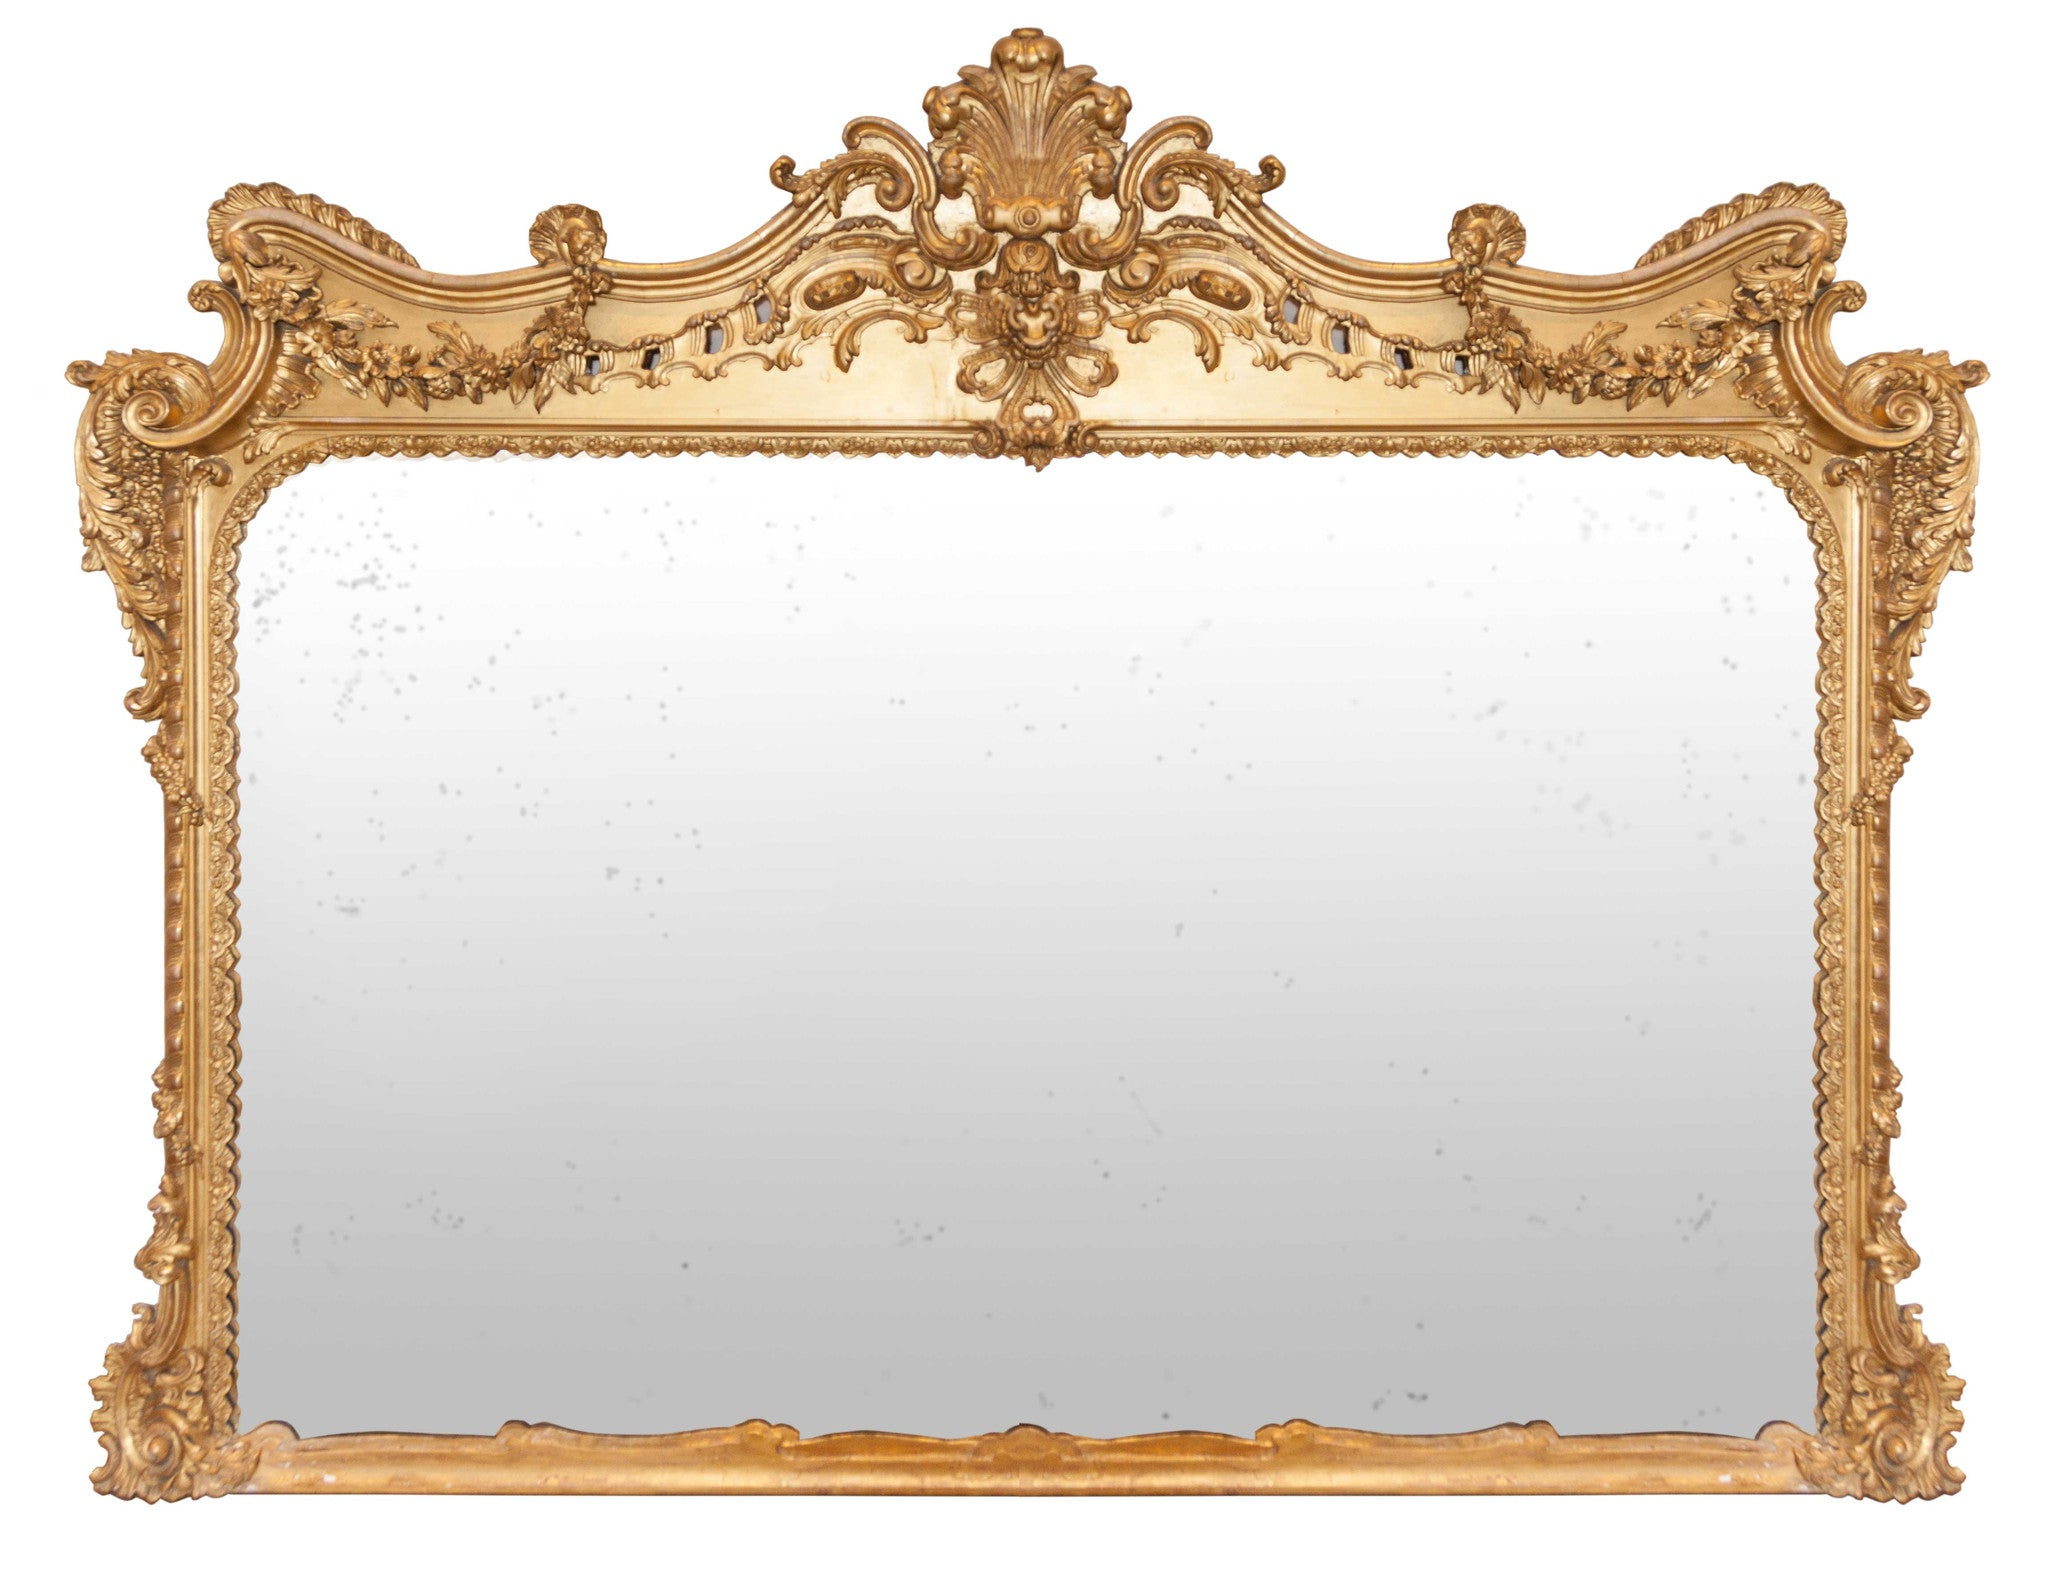 Garners antiques large ornate gilt antique mirror for for Big mirrors for sale